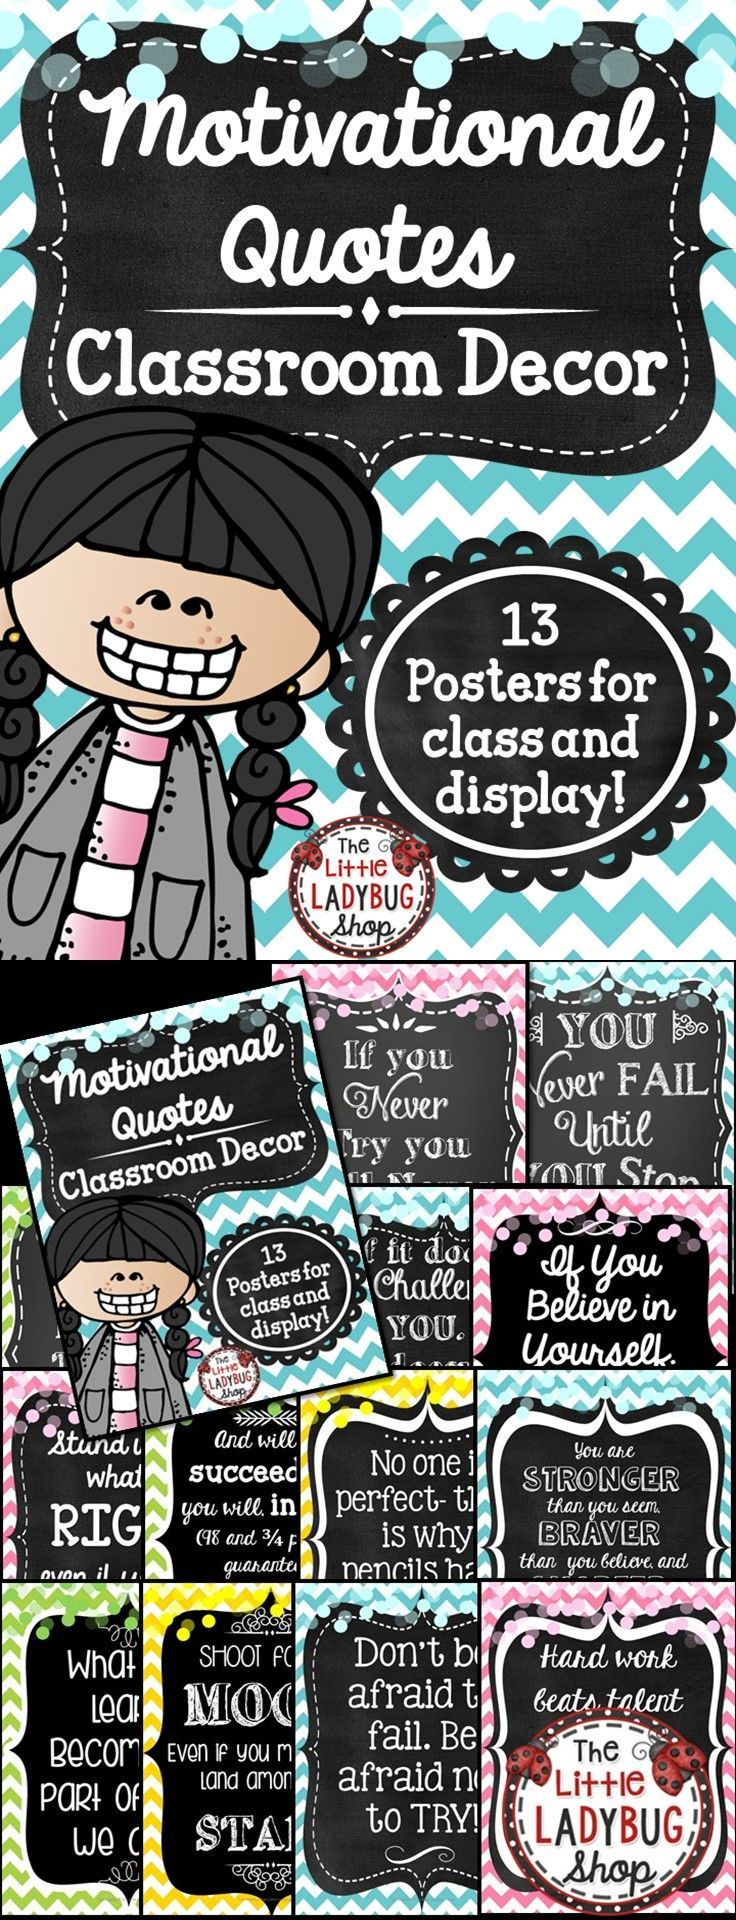 Class Decor: Motivational Posters {Colorful Chevron and Chalkboard Theme} | Motivational Quotes | Class Decor | Pastel Chevron | Chalkboard Decor   Motivational Posters can be so inspiring to students! Hang these beautiful Colorful Chevron and Chalkboard Posters in your room! They are classy and simple that they compliment MANY classroom themes! These are perfect for laminating and hanging all year on your bulletin boards or class door! Match up with another color and it works perfectly!